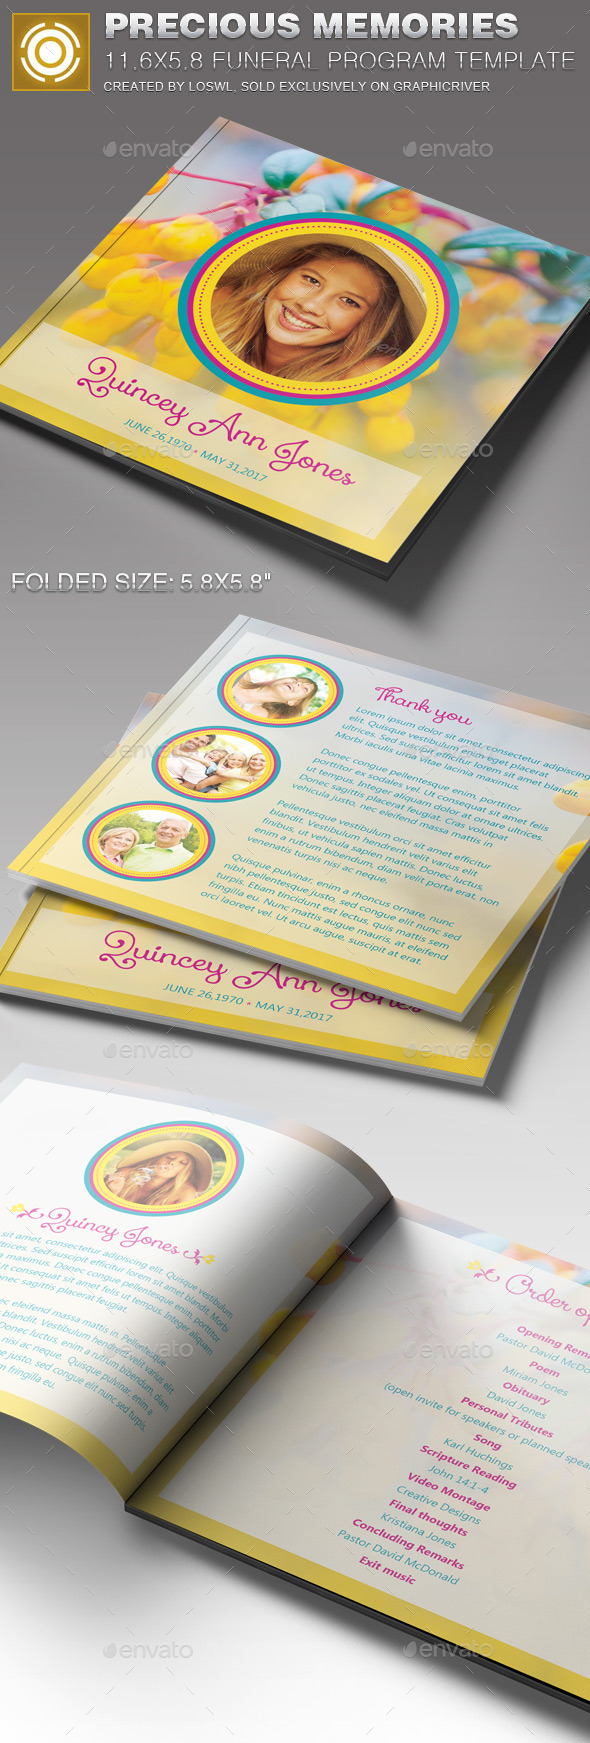 GraphicRiver Precious Memories Funeral Program Template 11244715